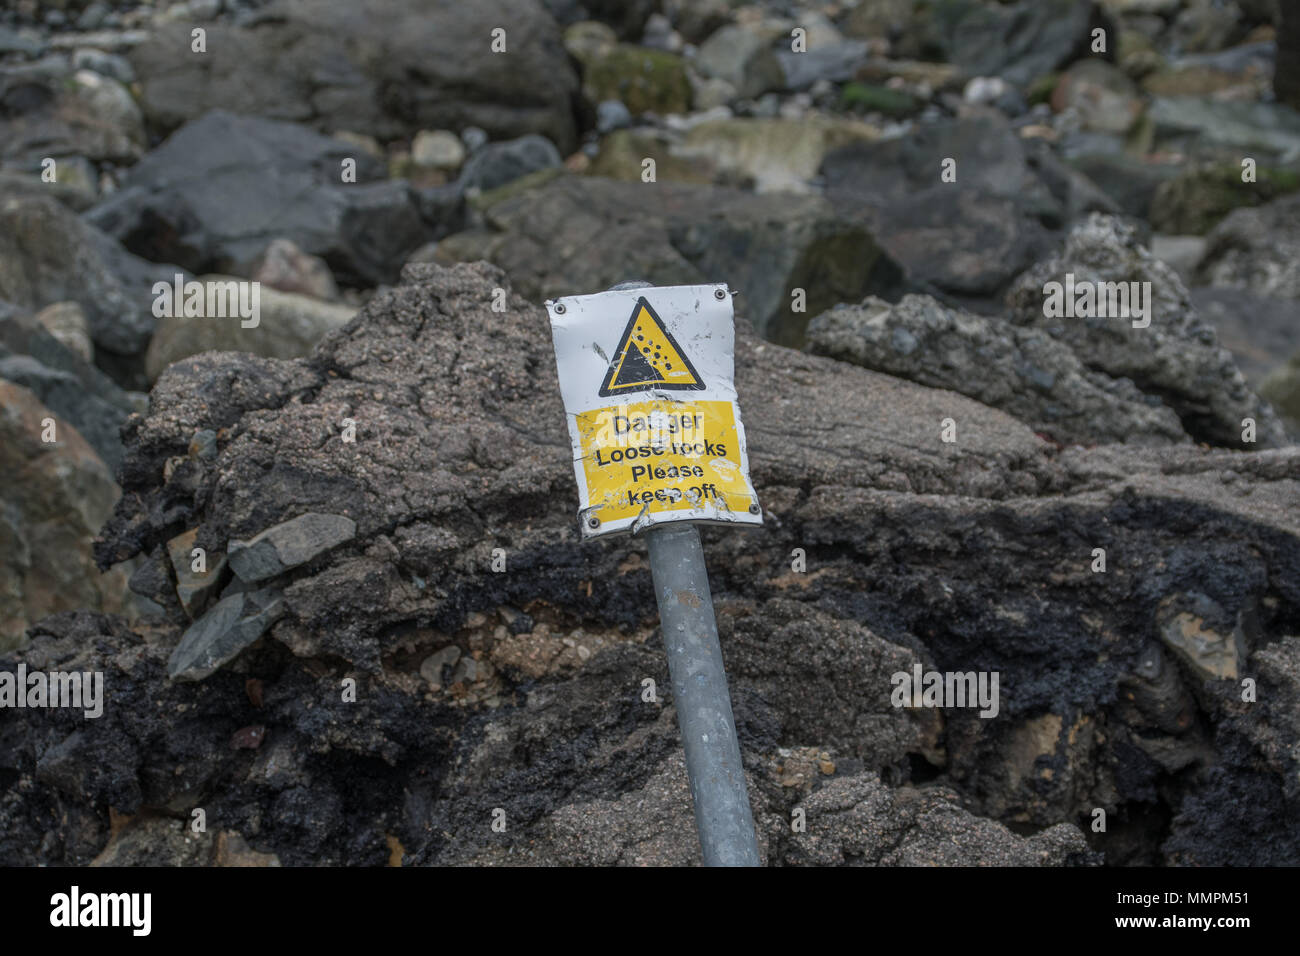 Danger loose rocks sign which has been bent and is falling over against some loose rocks on the coast at Newlyn in Cornwall - Stock Image